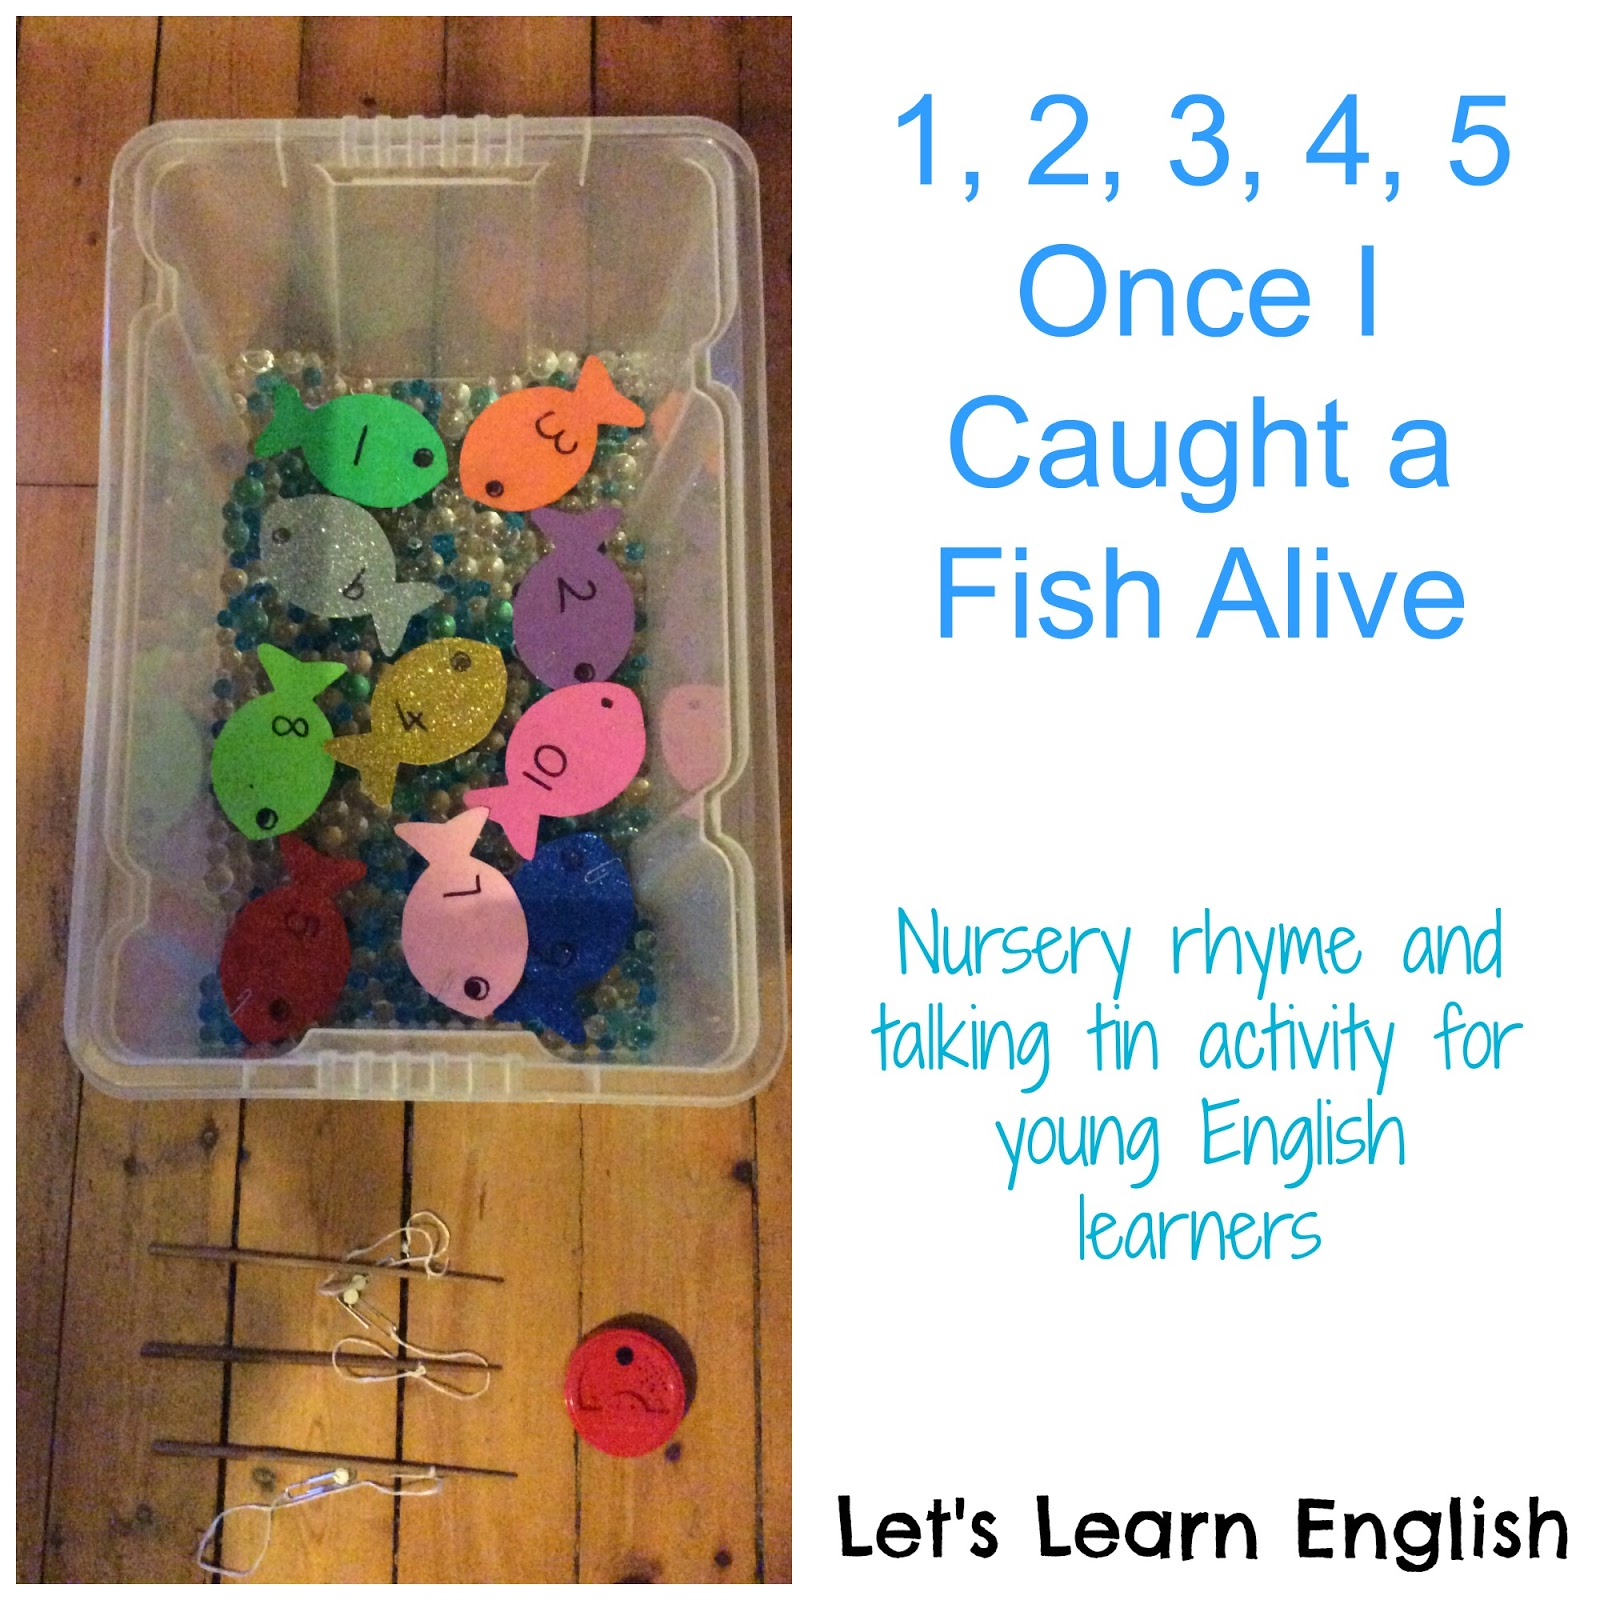 Let 39 s learn english for kids world nursery rhyme week day for Once i caught a fish alive